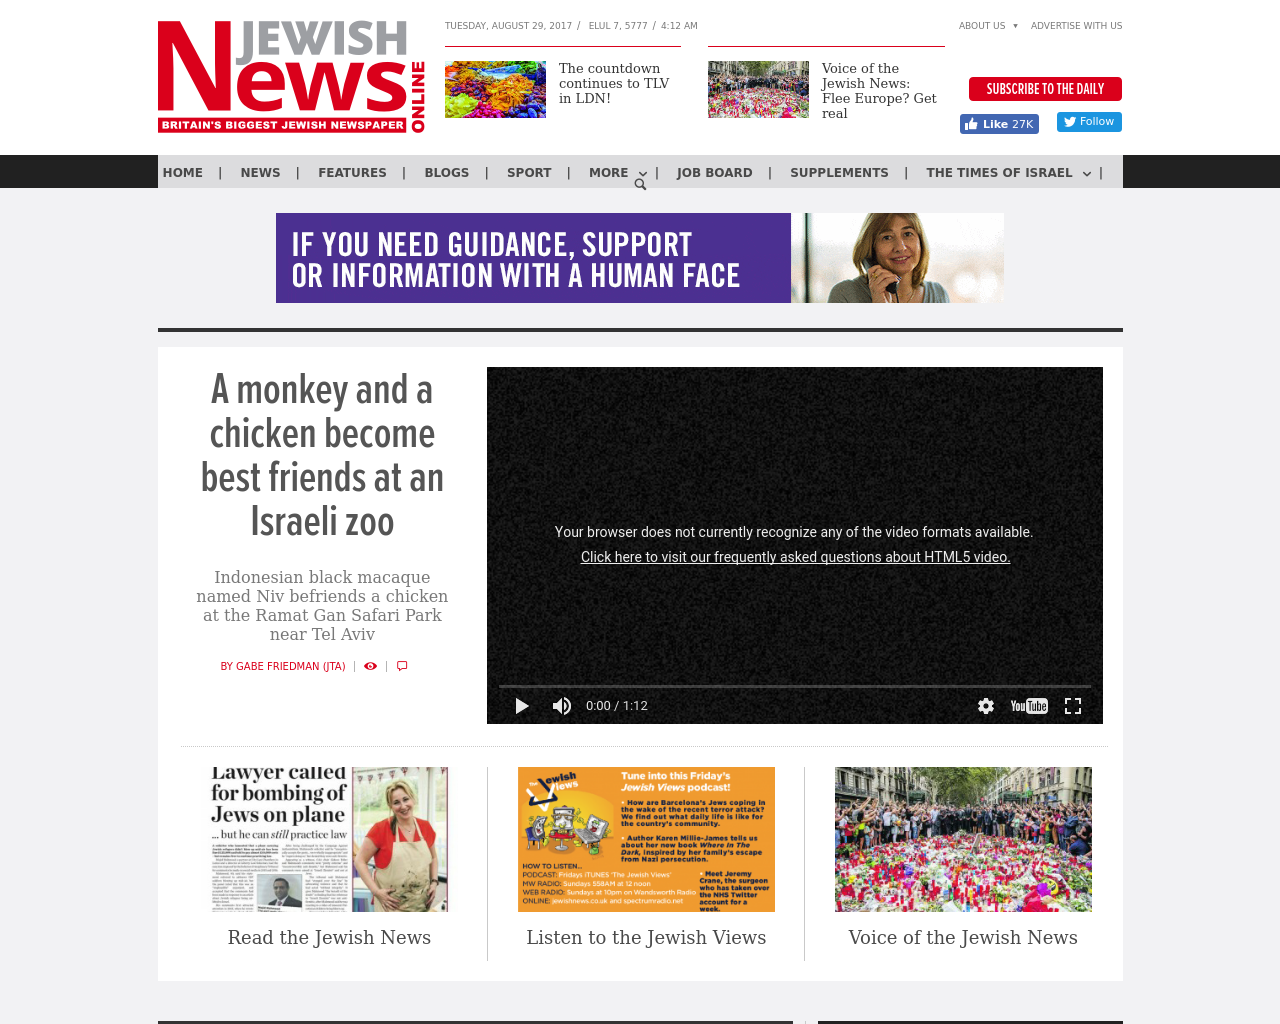 Jewish-News-Online-Advertising-Reviews-Pricing